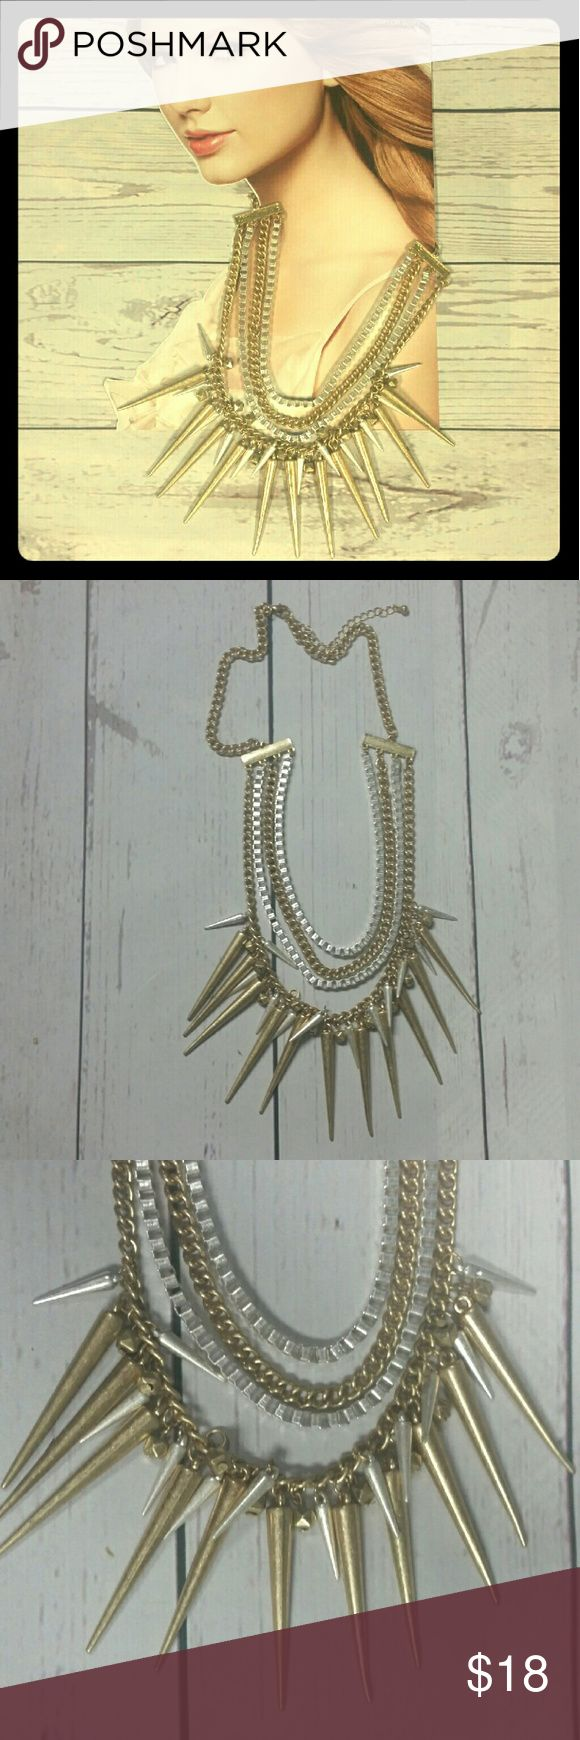 Spiked necklace!!! Give a touch of rock and roll to any outfit with this spiked necklace. Spiked gold and silver color necklace. Never worn. Bundle discount 20% off 3 or more items Jewelry Necklaces